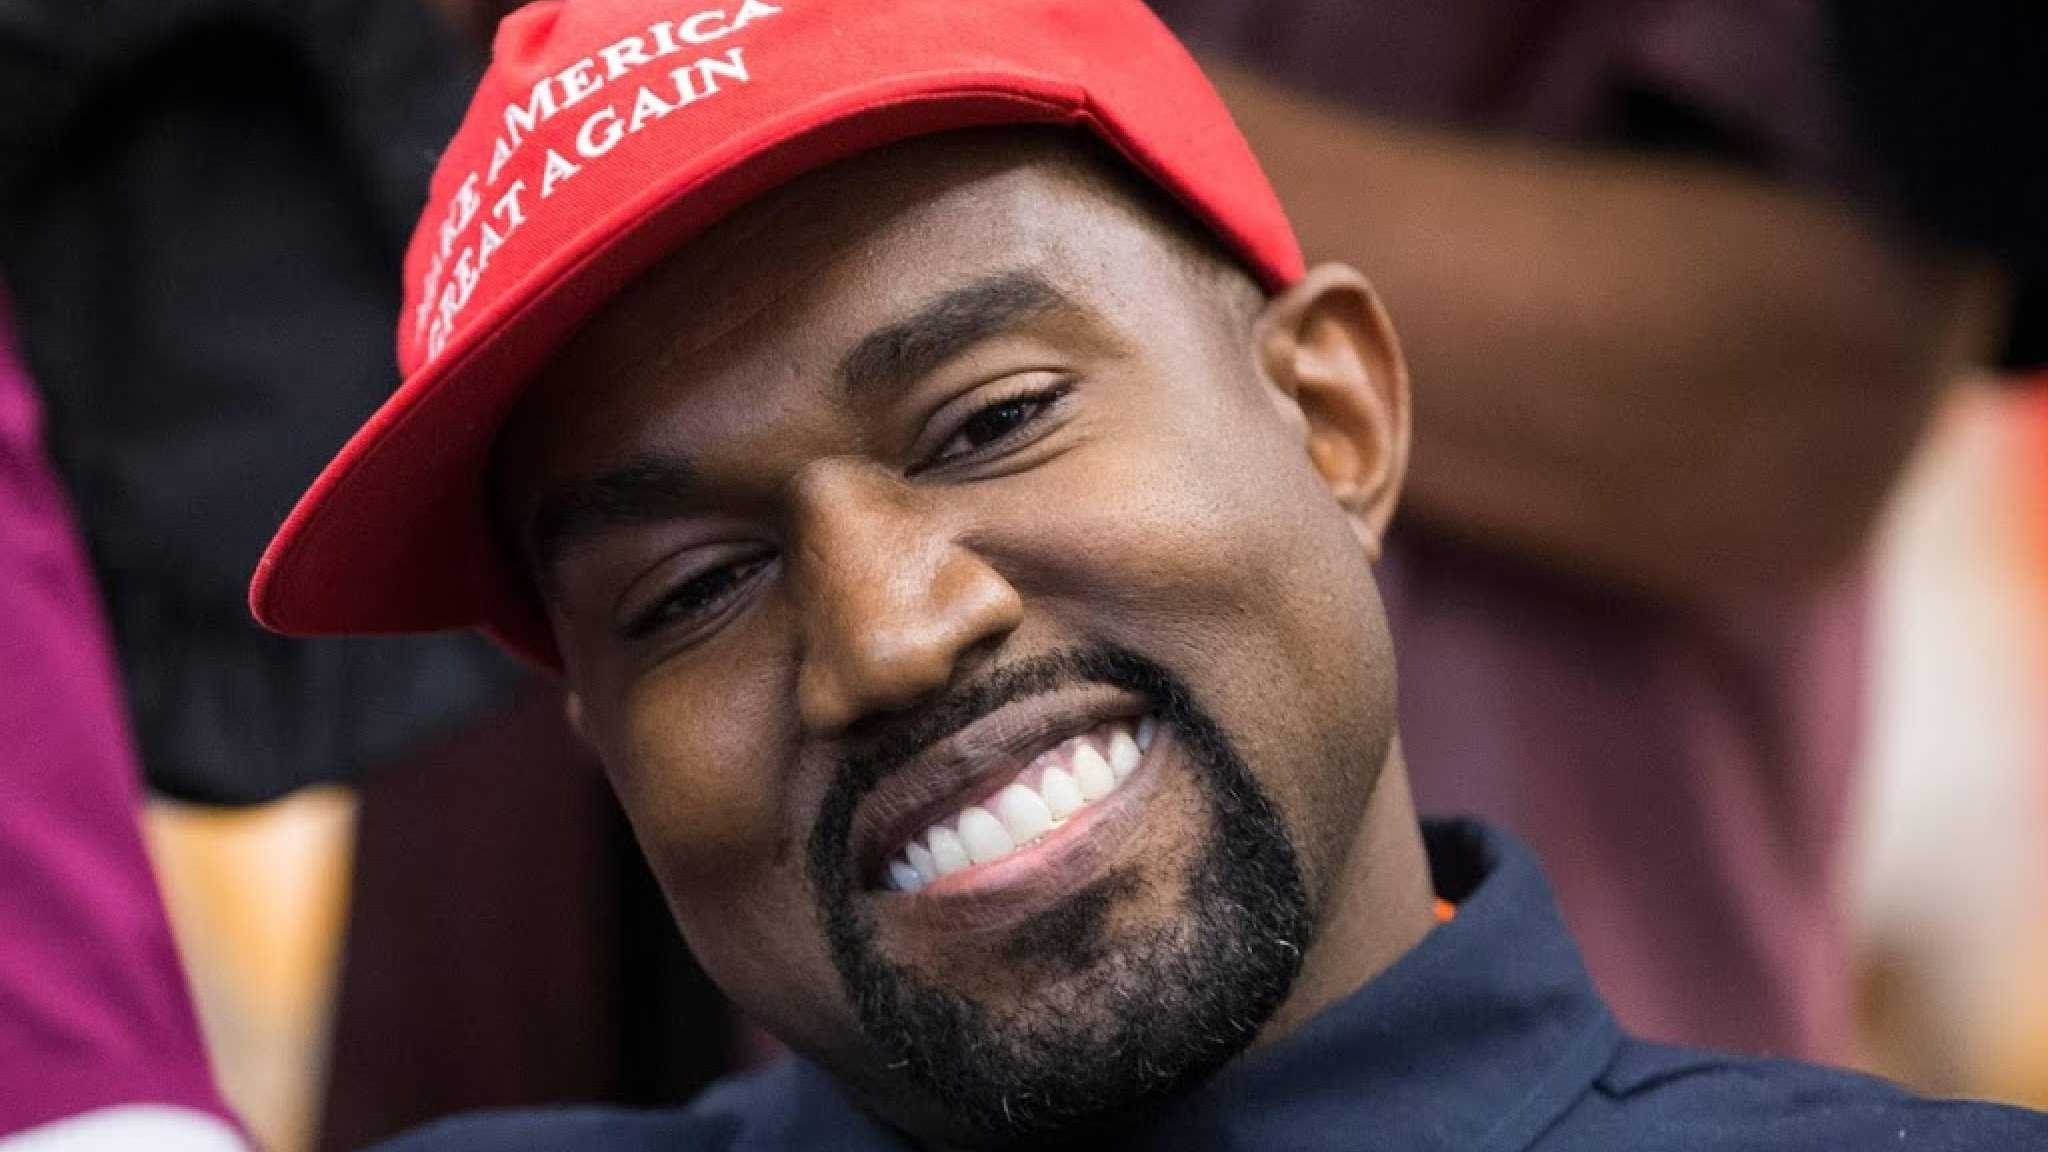 Kanye West raises the ceiling of his presidential plans